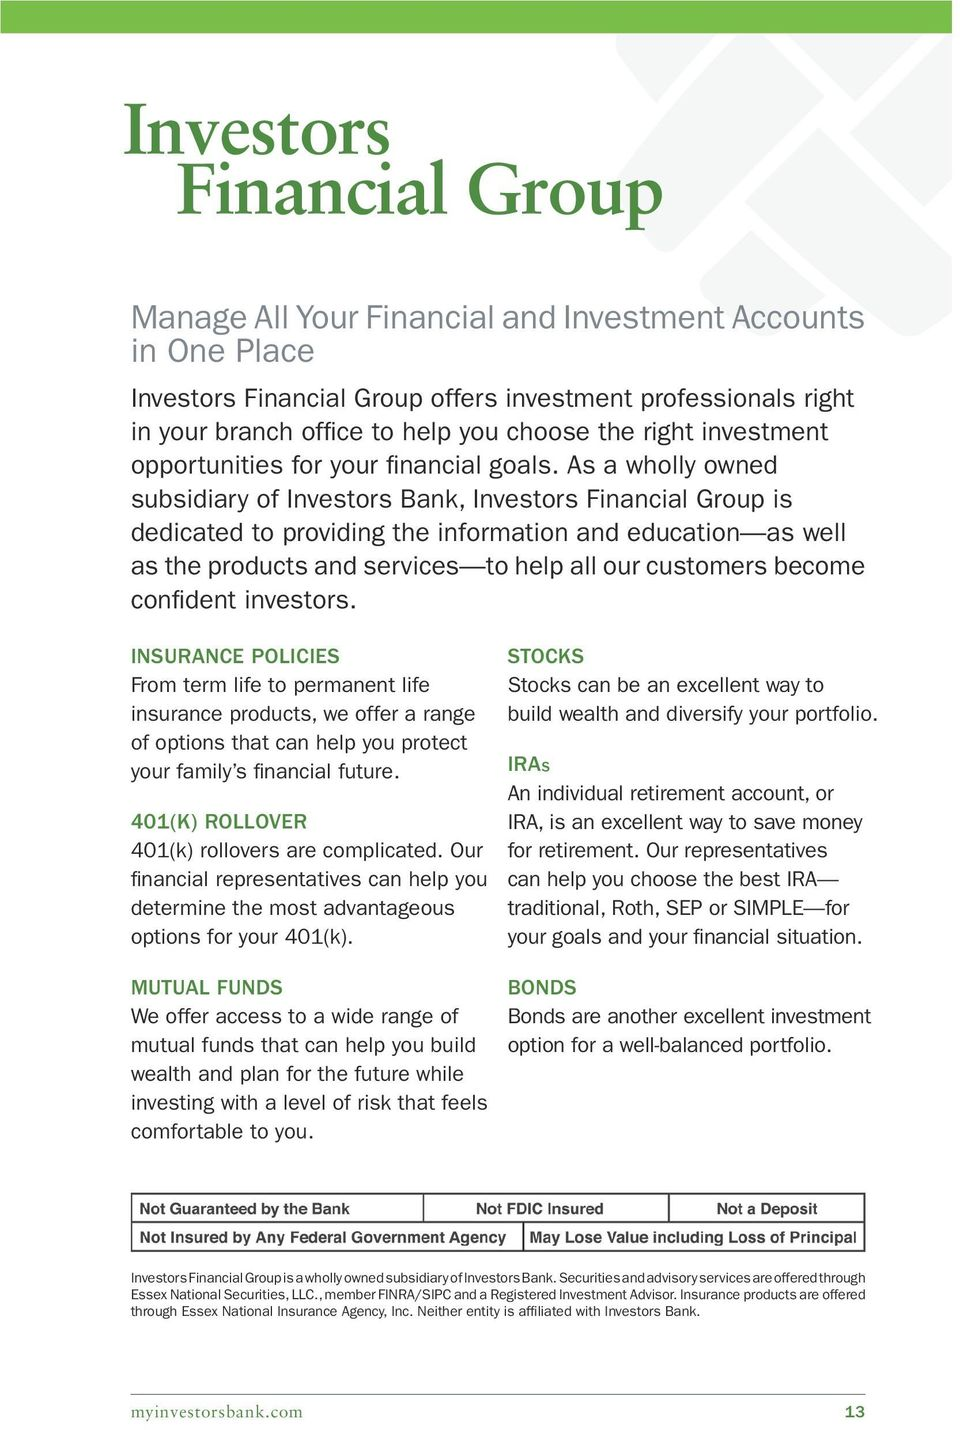 As a wholly owned subsidiary of Investors Bank, Investors Financial Group is dedicated to providing the information and education as well as the products and services to help all our customers become